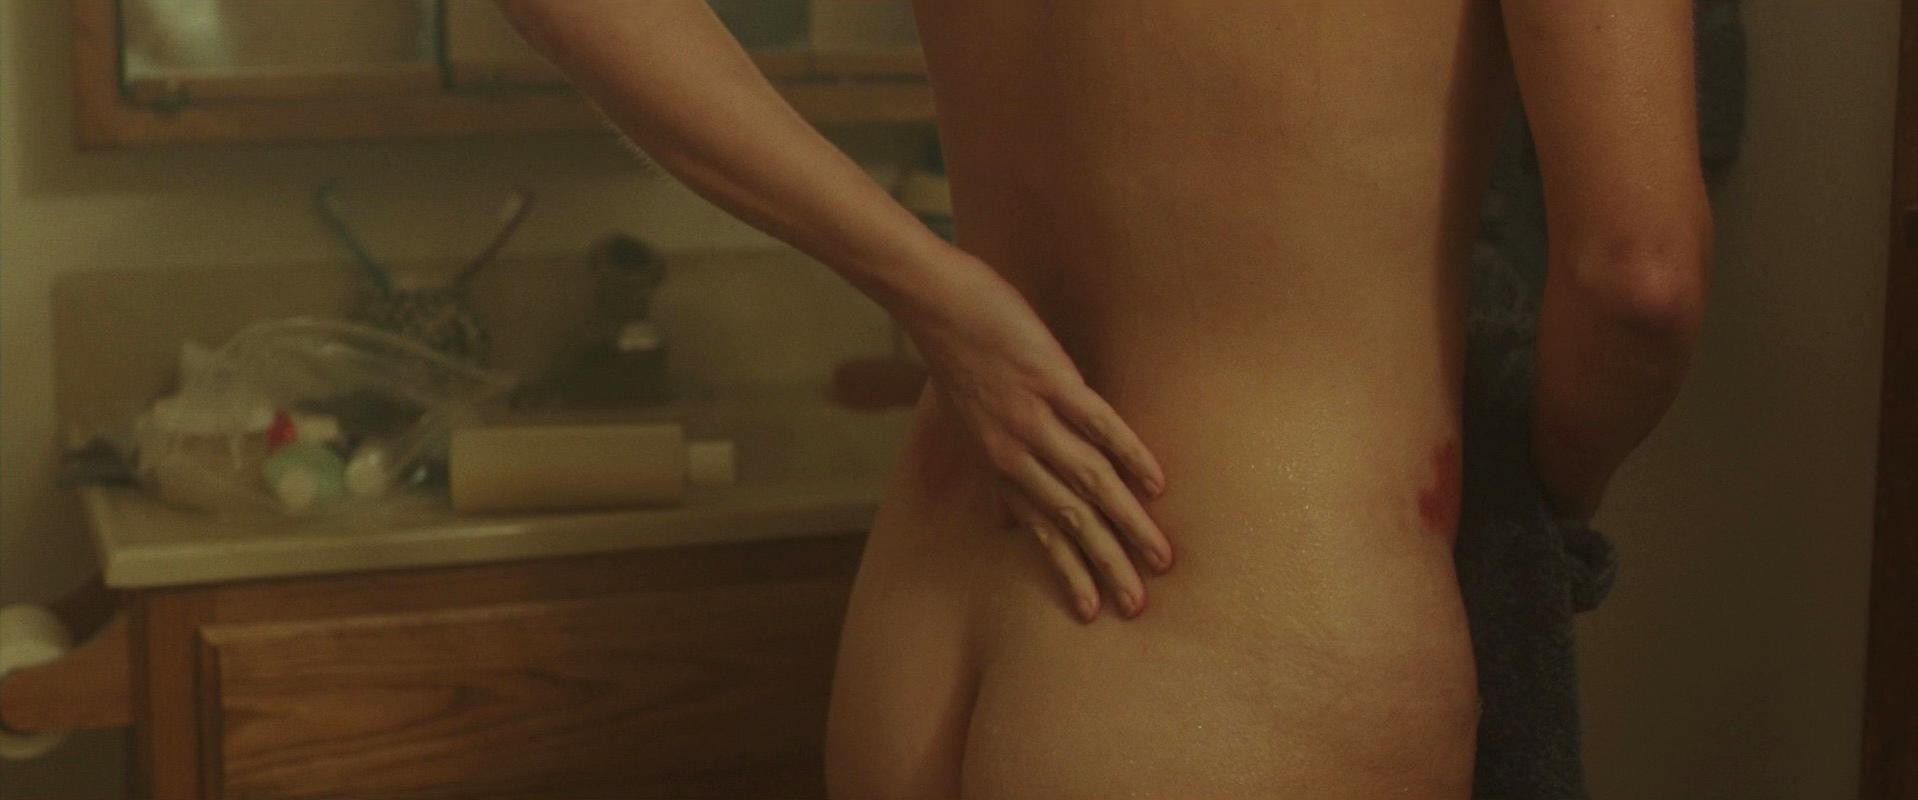 Reese witherspoon naked butt